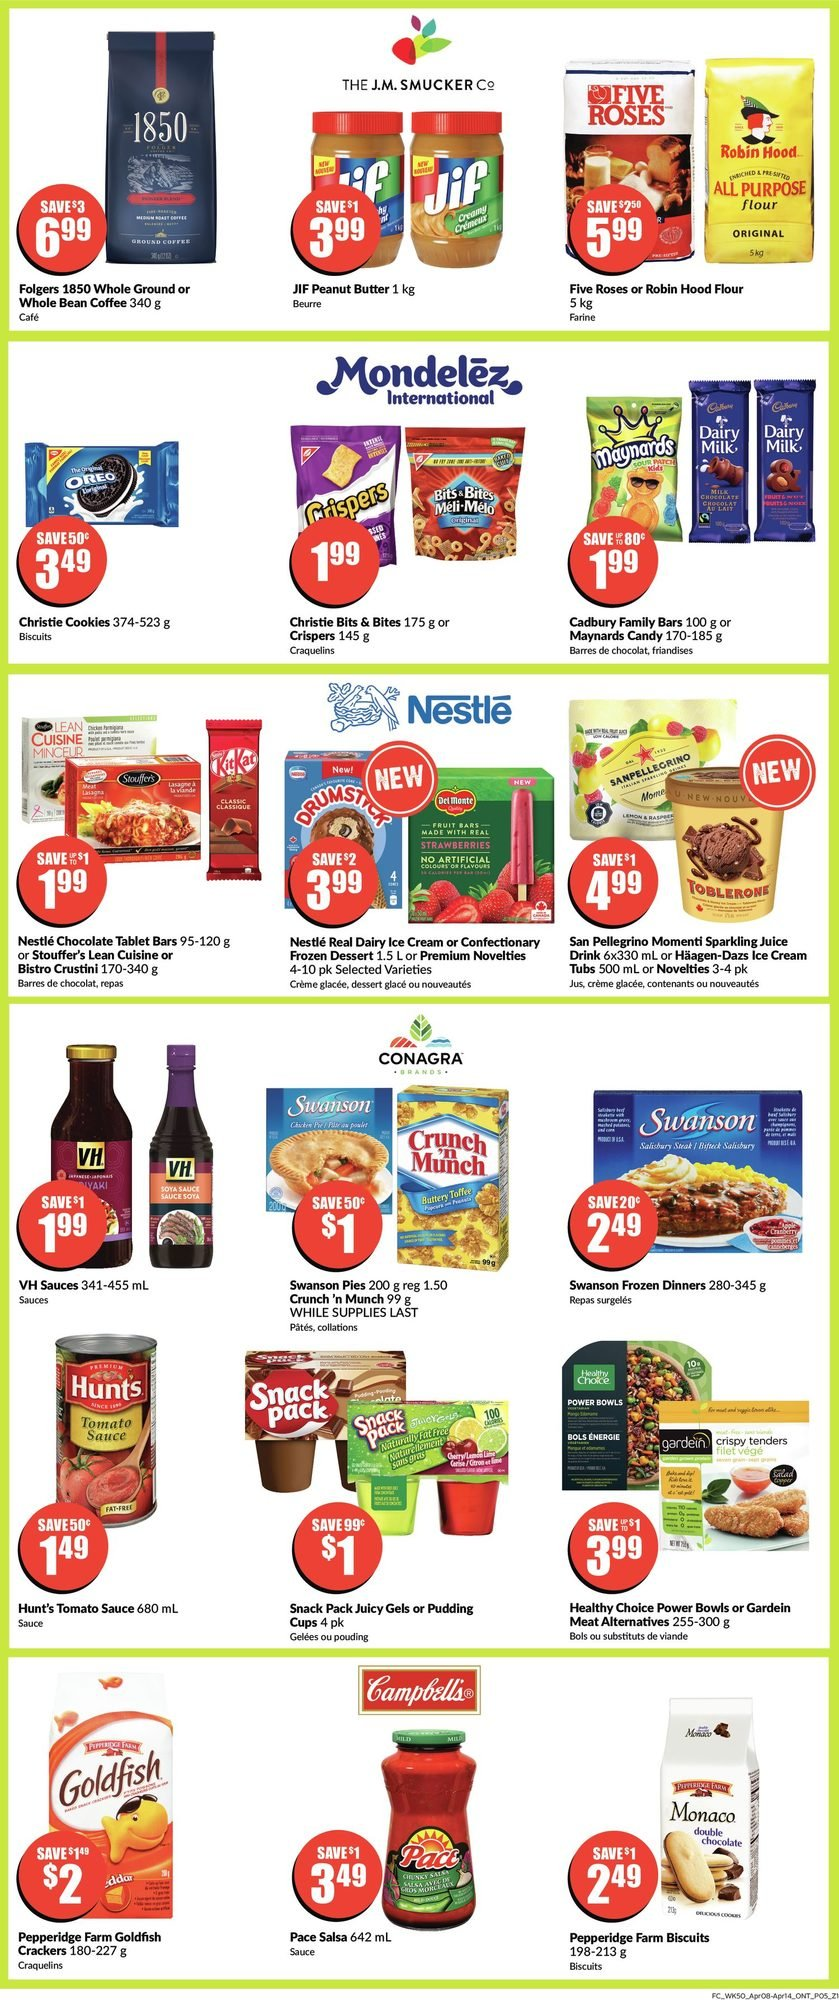 FreshCo - Weekly Flyer Specials - Page 5